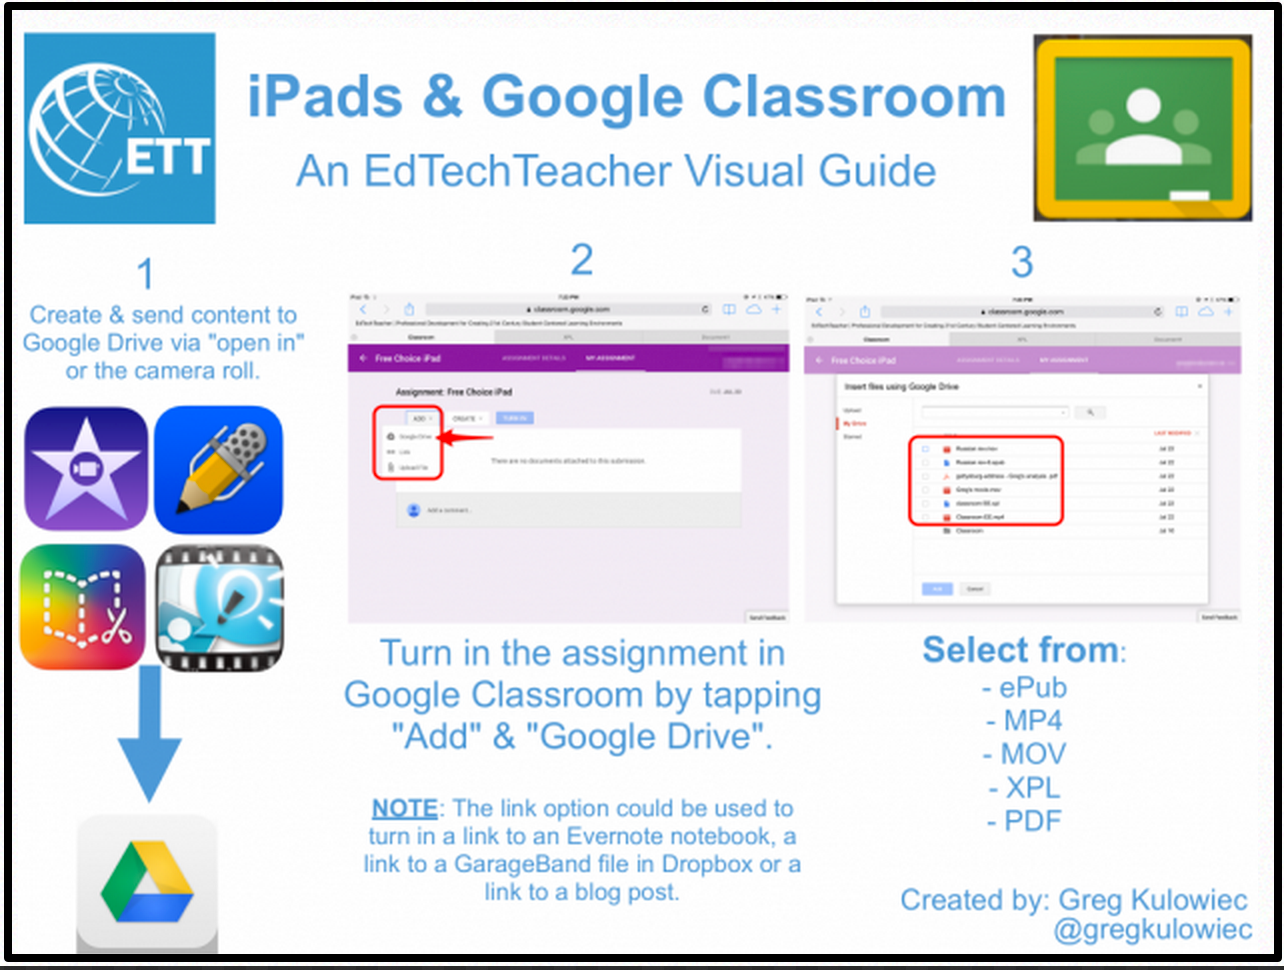 3 Easy Ways to Integrate iPad into Your Google Classroom